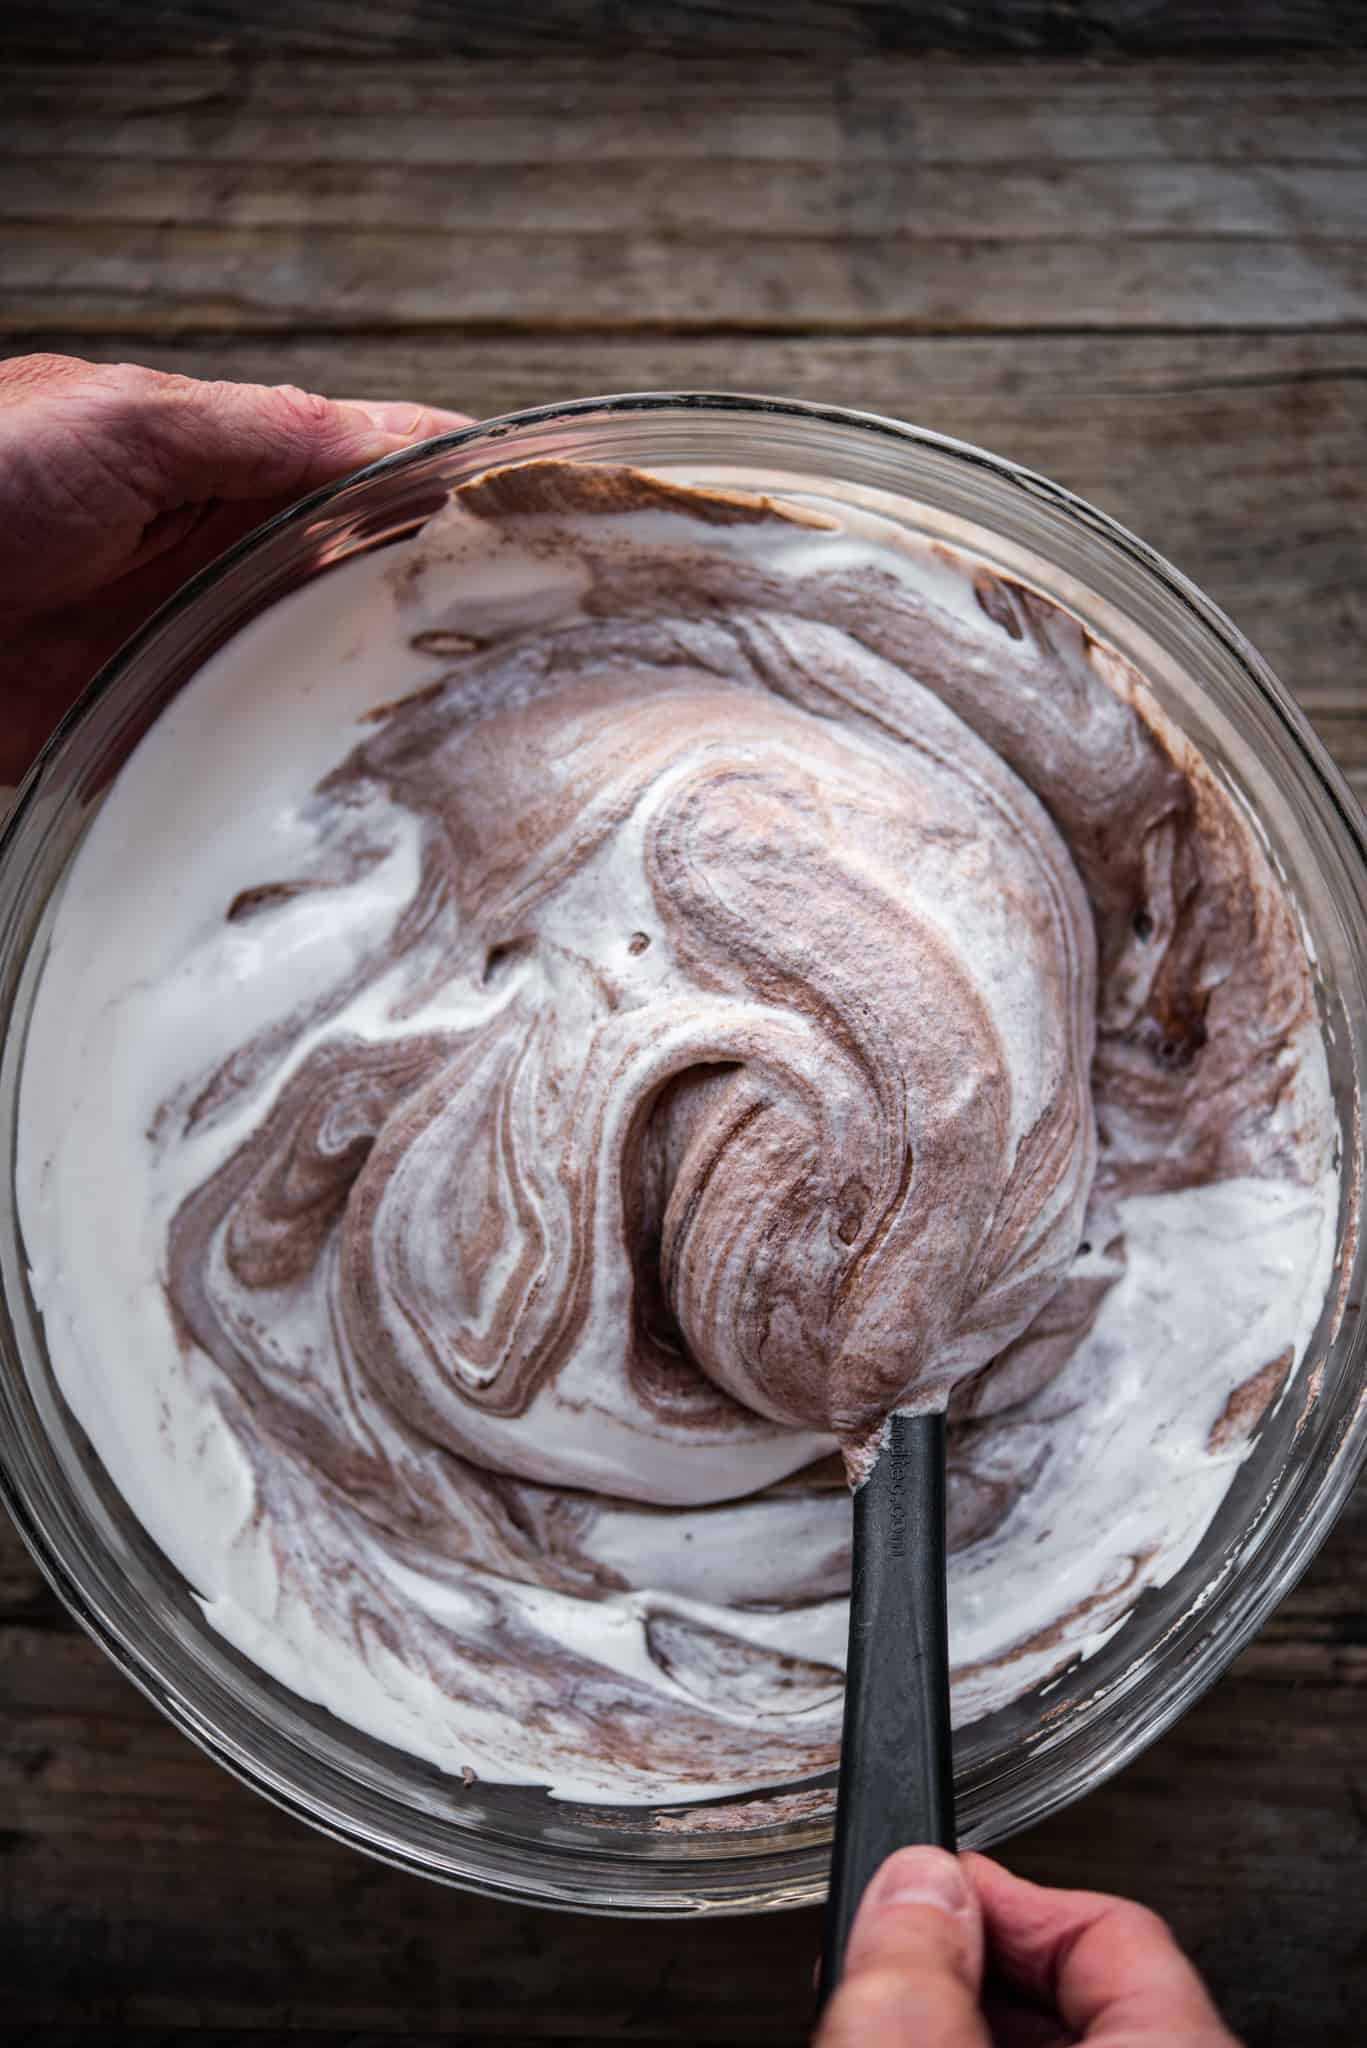 Person folding chocolate into whipped aquafaba to make mousse